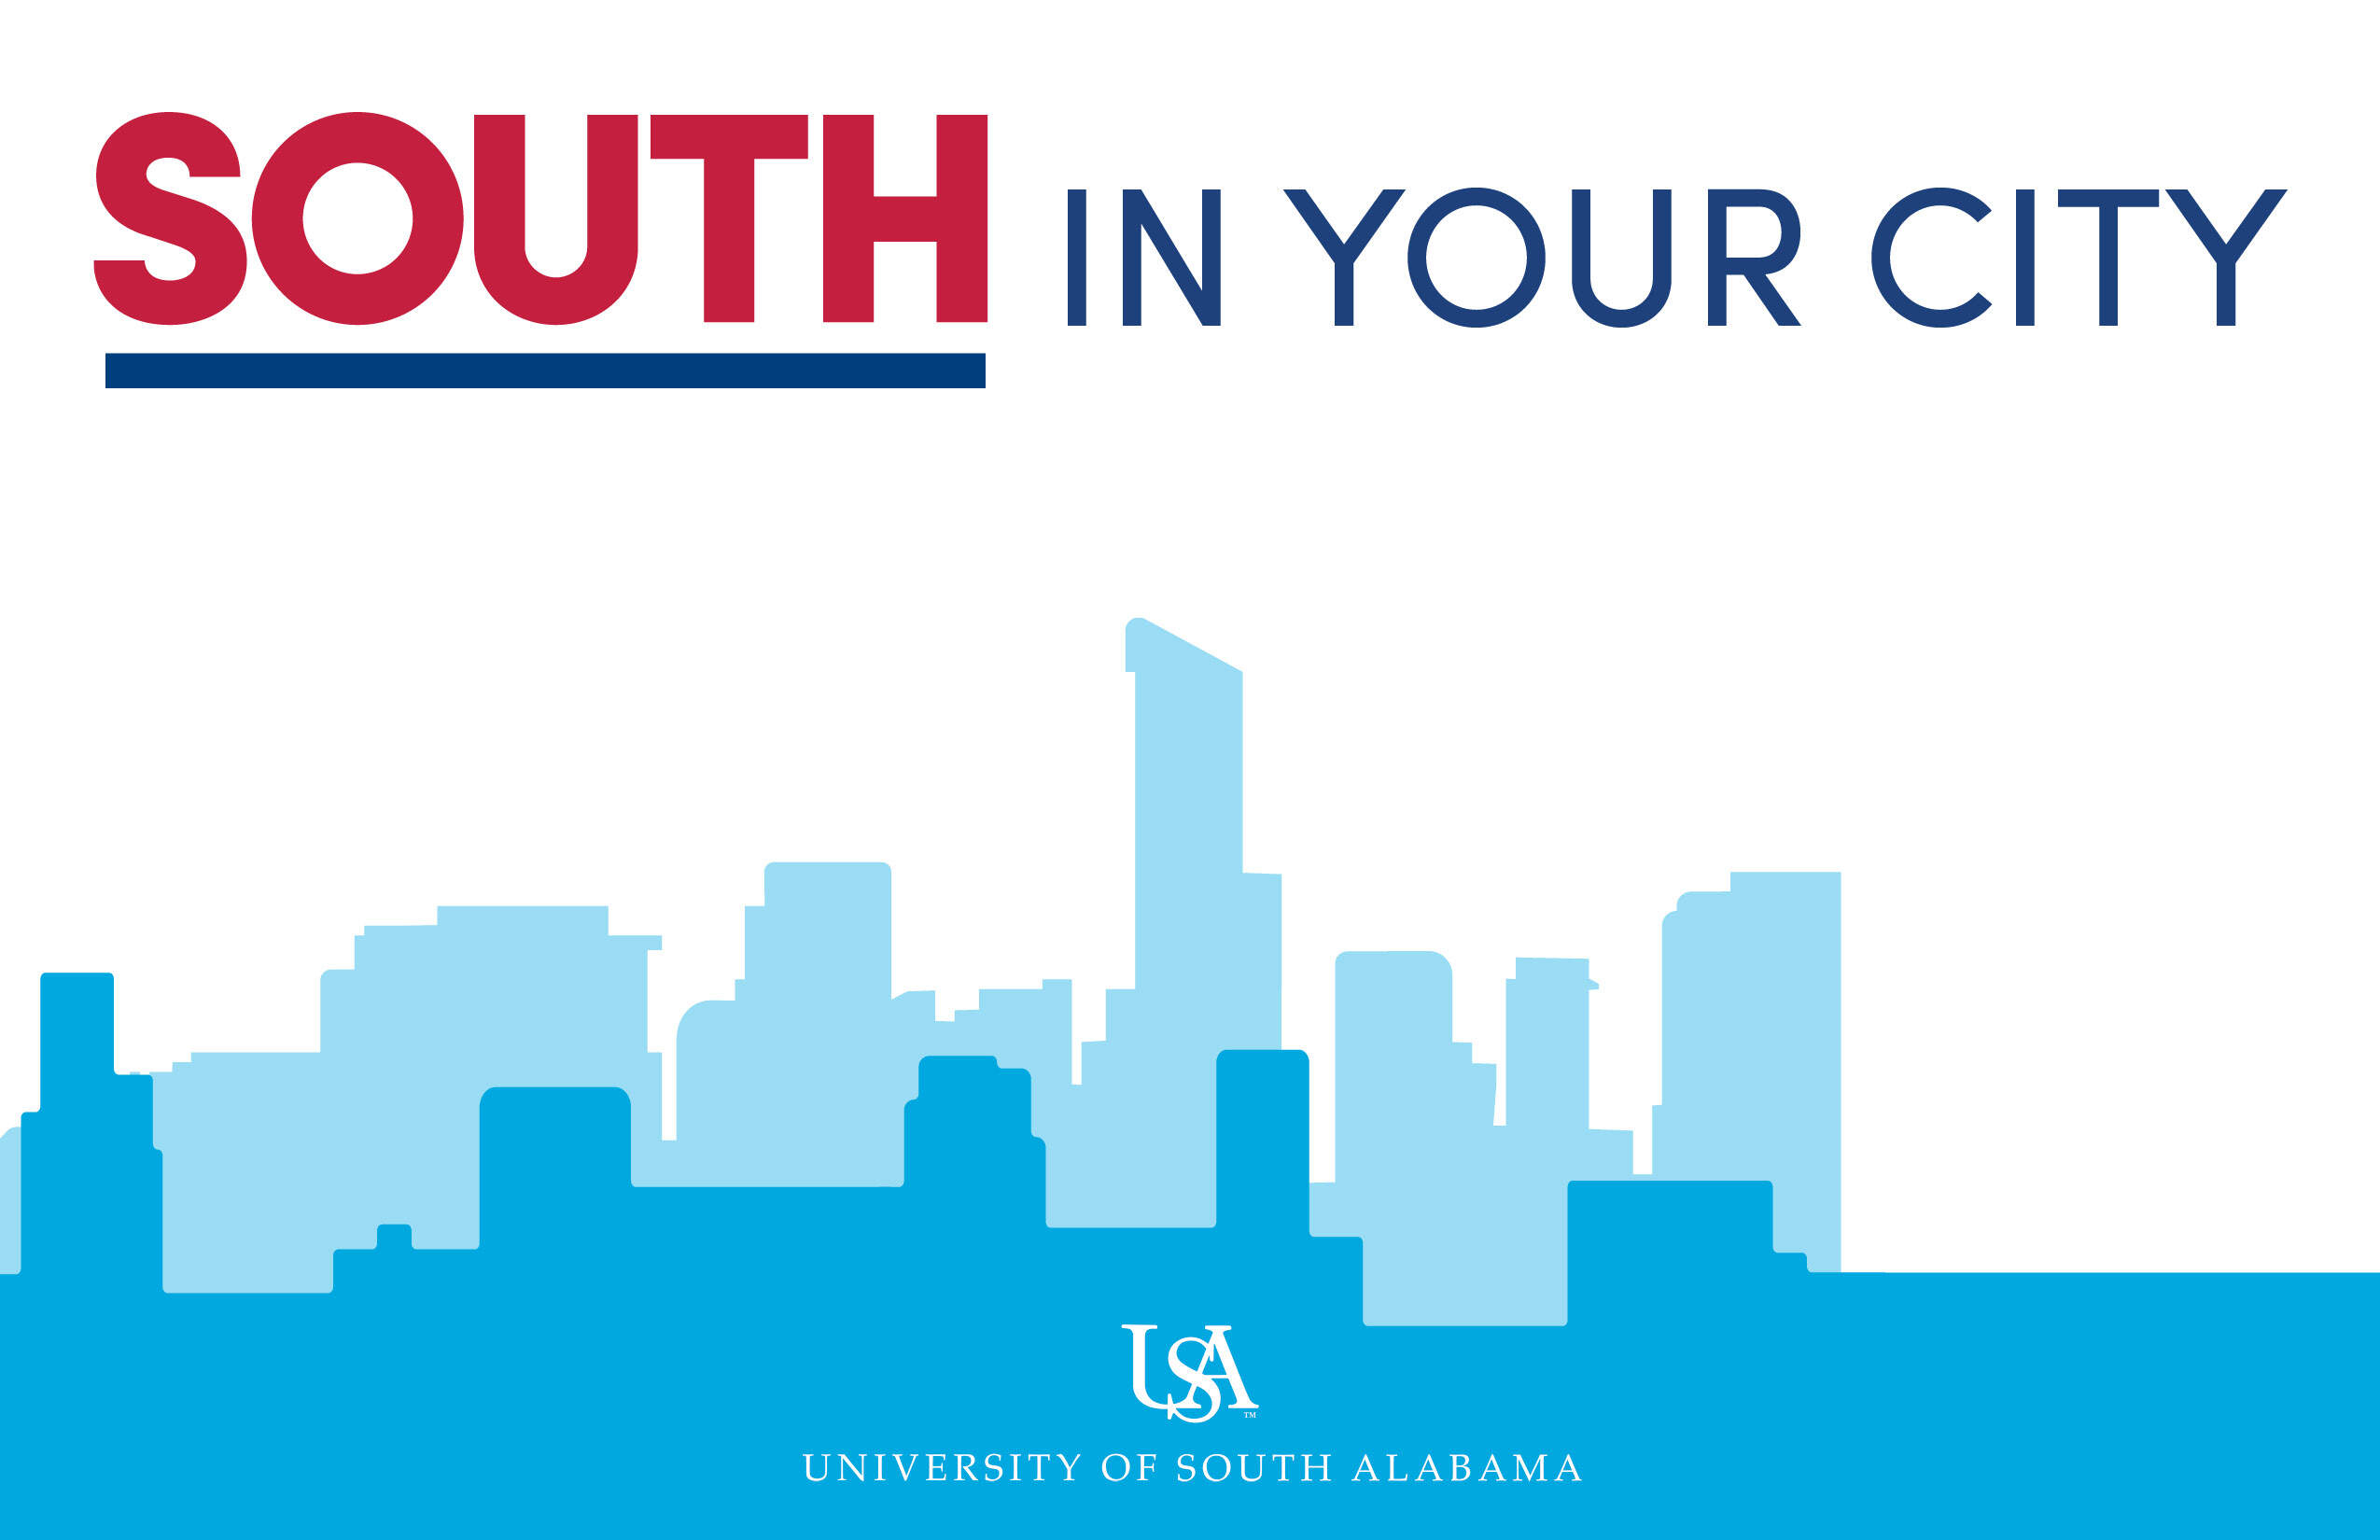 University of South Alabama (South in Your City)